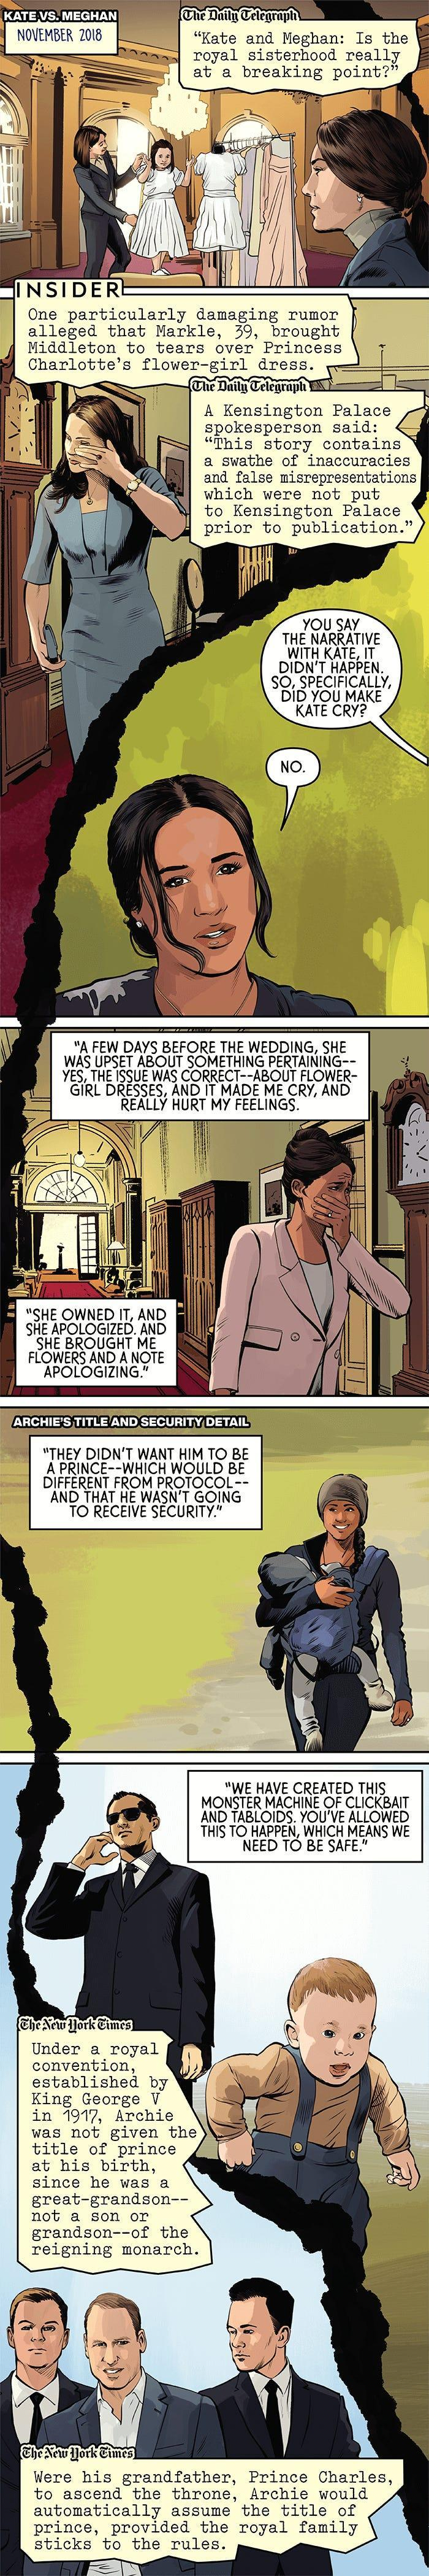 Page two of the story. The rumor that Meghan made Kate cry is shown, followed by the revelation on Oprah that Meghan contends it was actually the other way around.